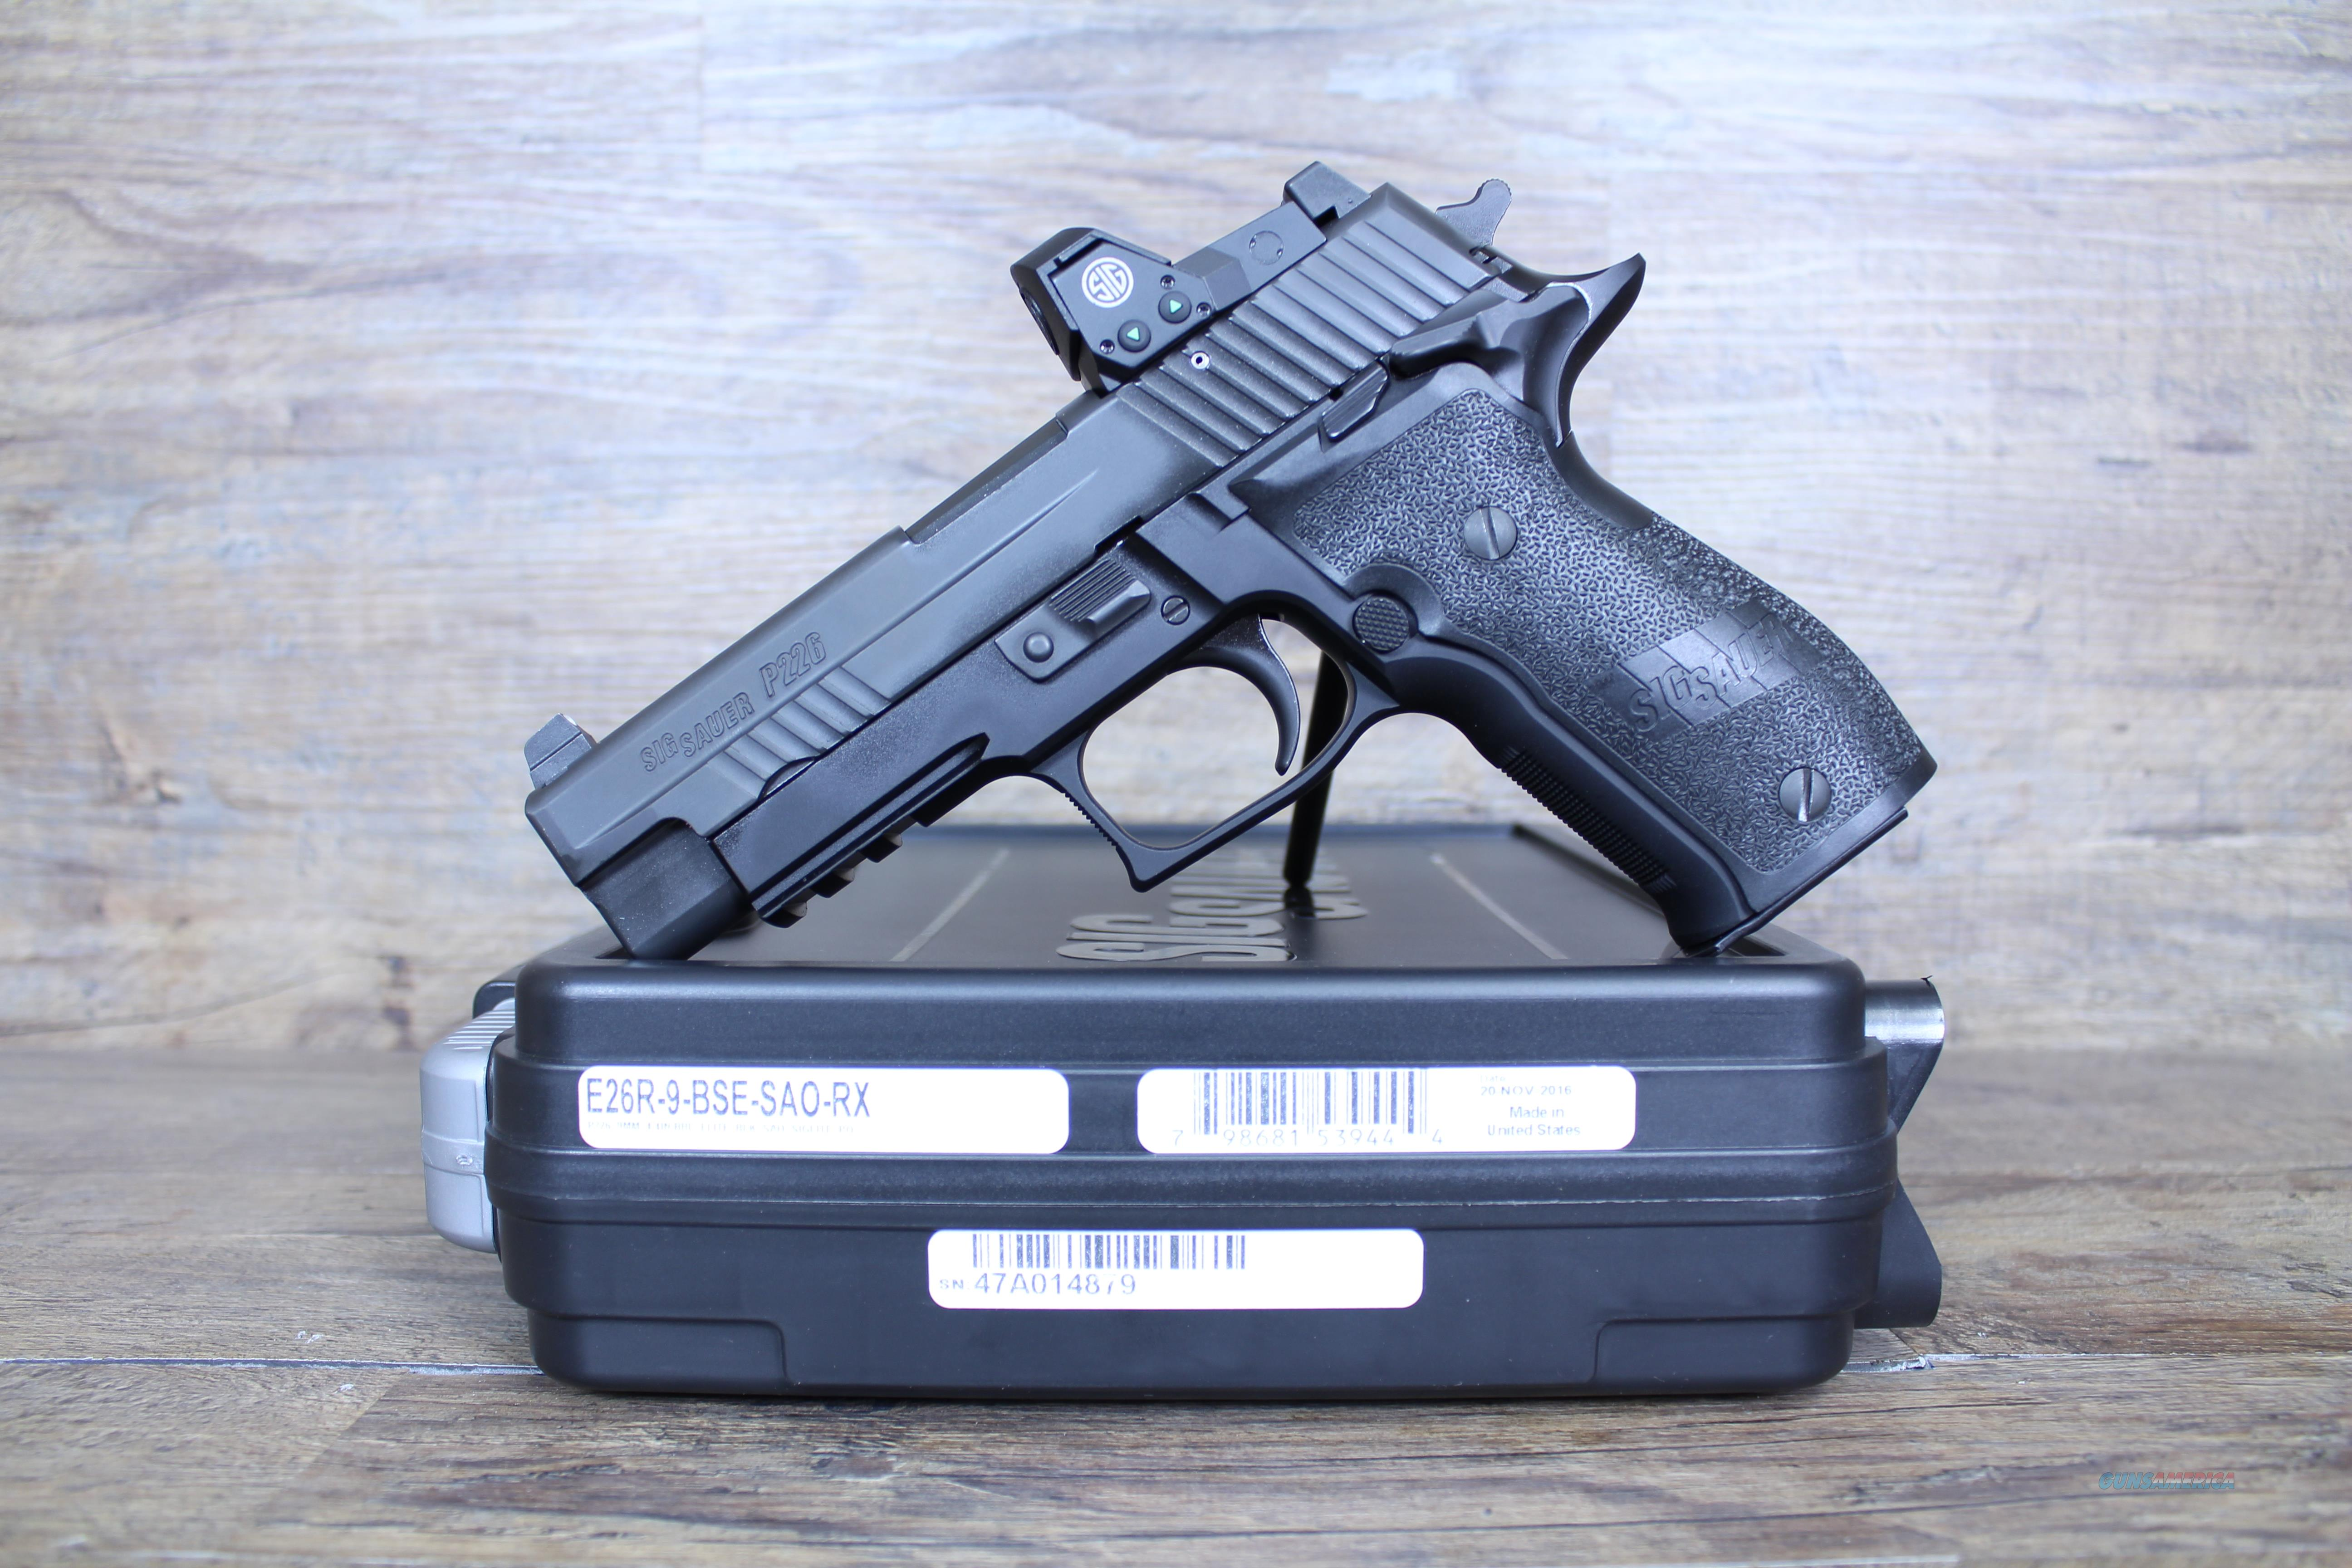 Sig Sauer P226 SAO RX 9mm 15+1 w/ Romeo Red Dot  Guns > Pistols > Sig - Sauer/Sigarms Pistols > P226